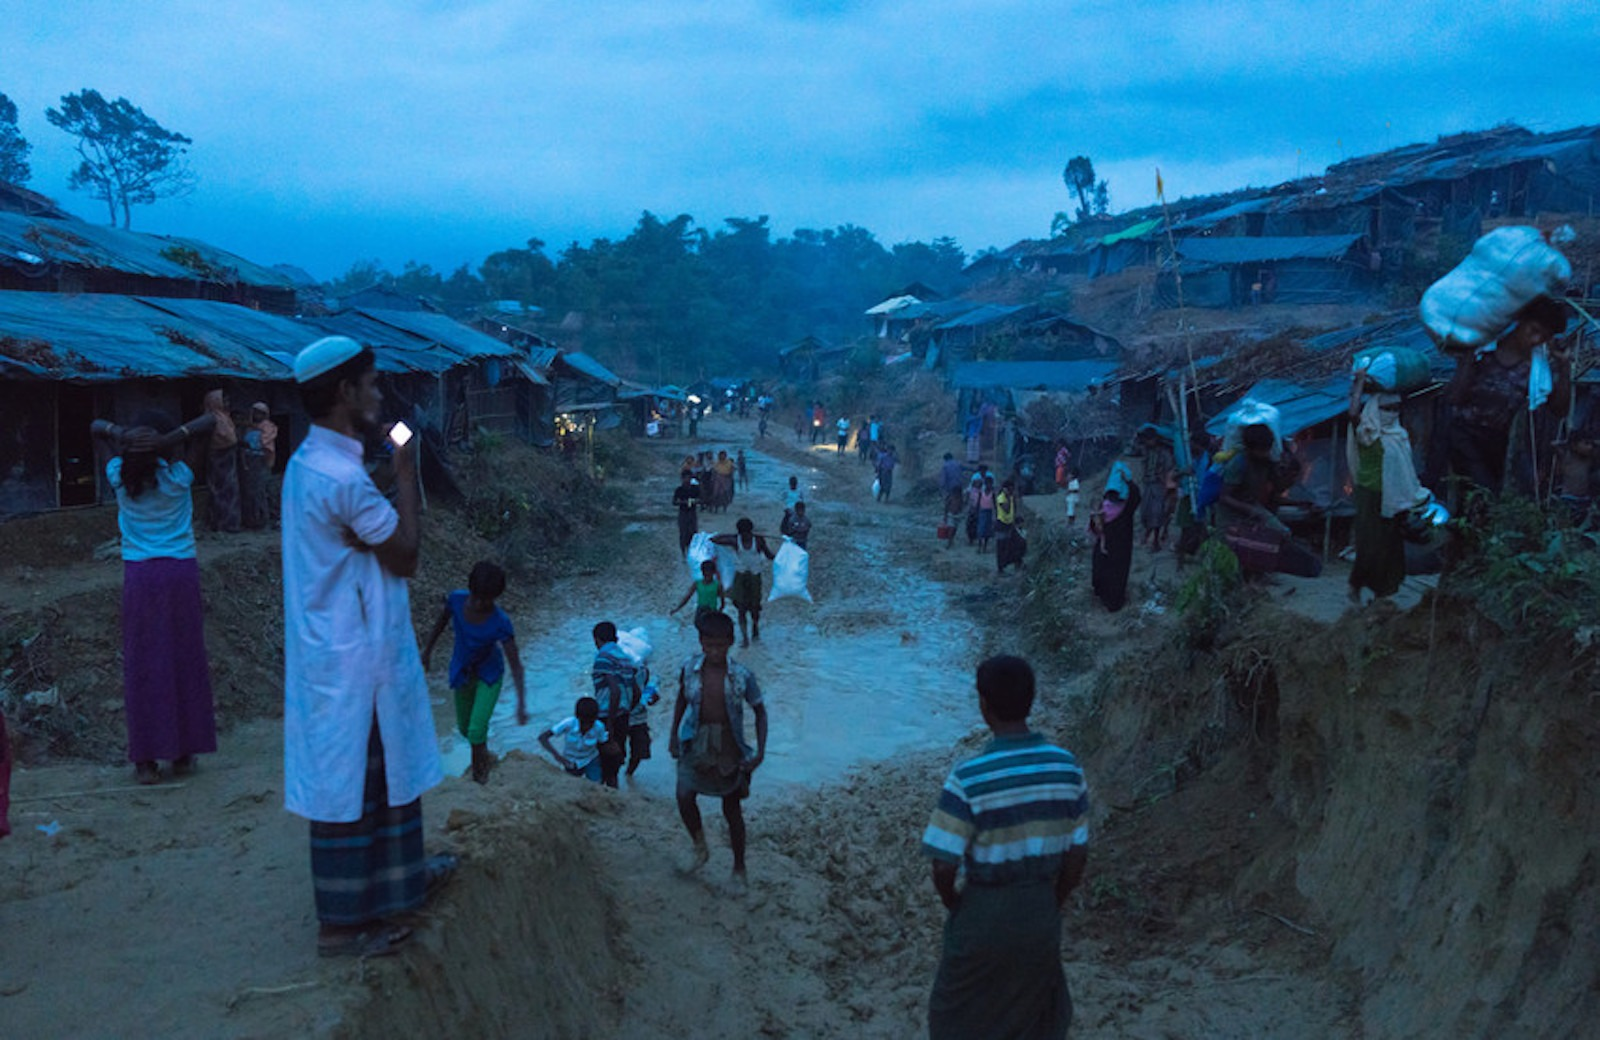 Bangladesh: Flooding and lethal mudslides leave thousands at risk in